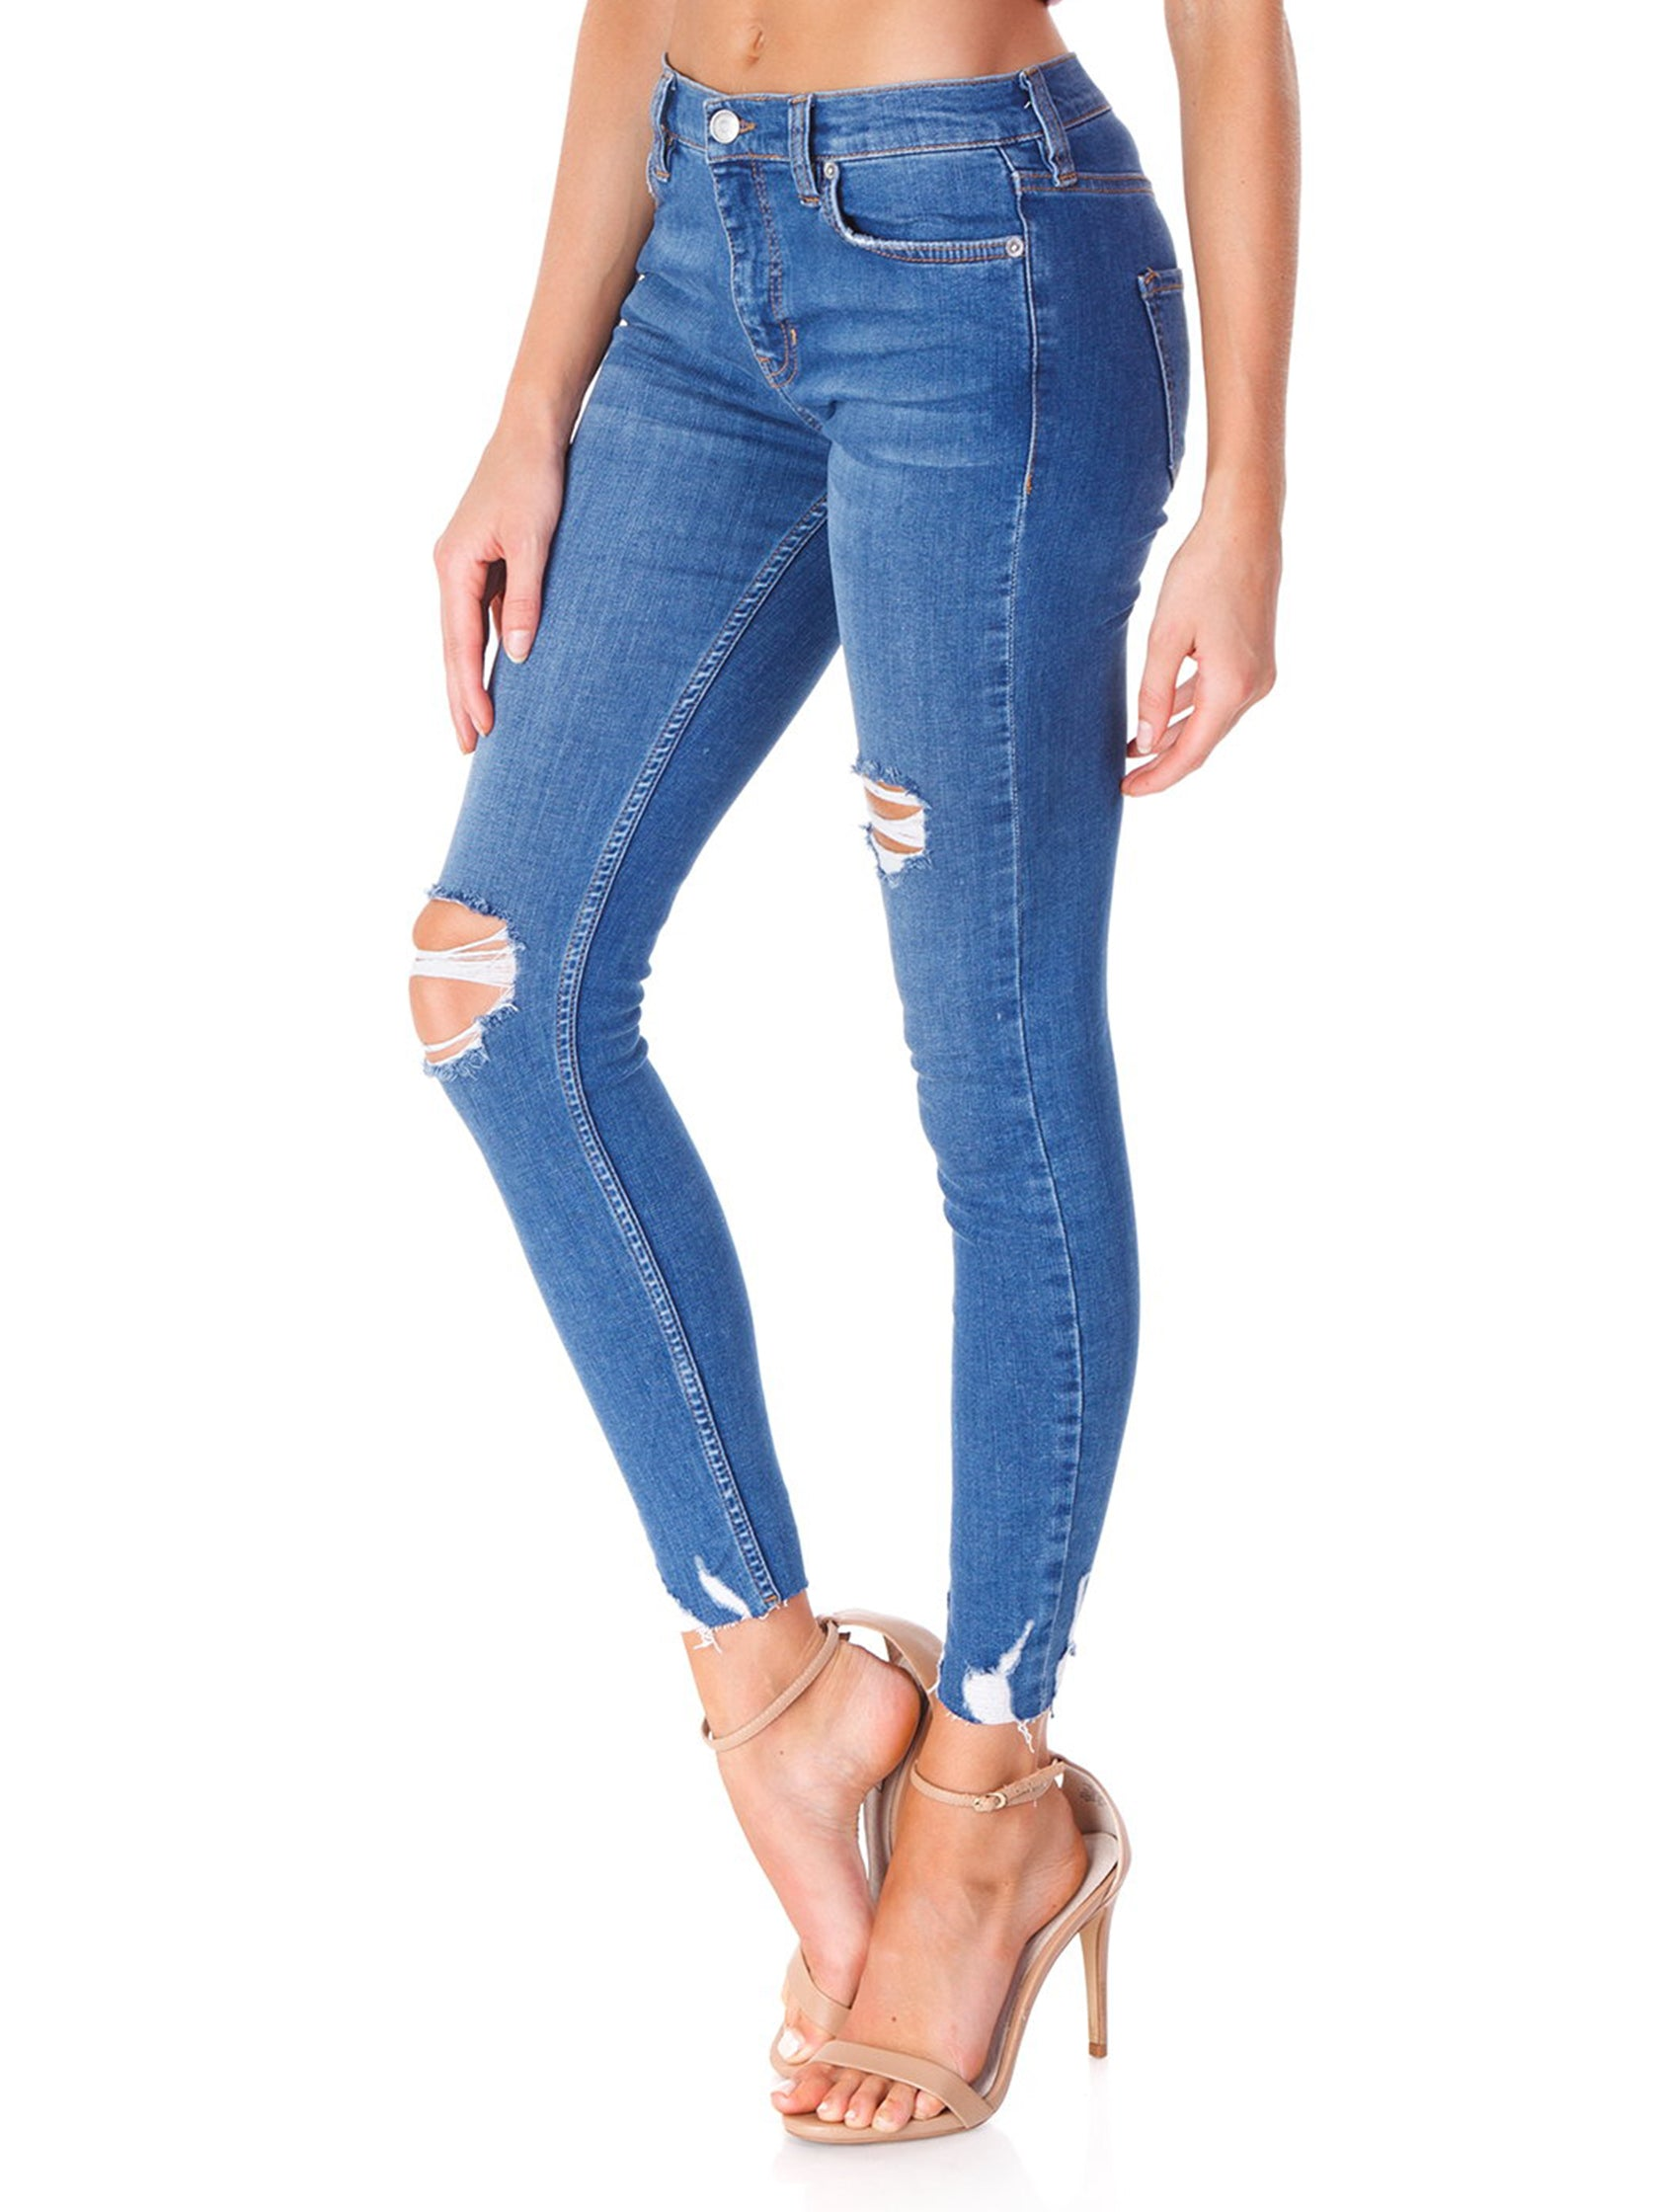 Women wearing a denim rental from Free People called Shark Bite Jeans